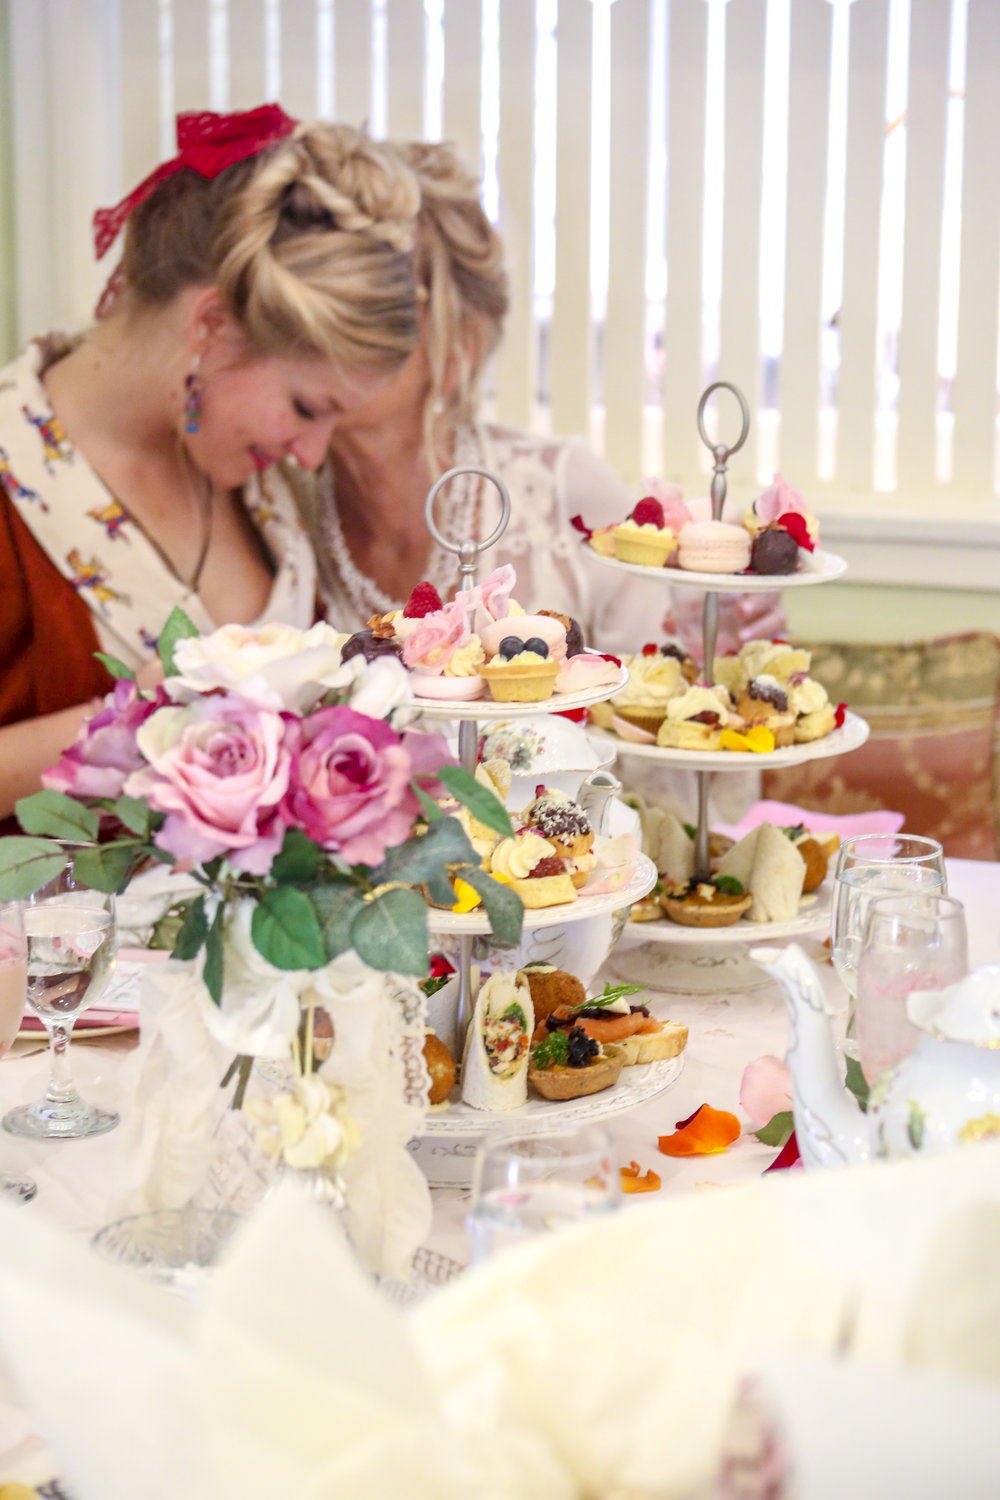 Rose Bliss High Tea is held in the Tearoom from Monday to Saturday at 11am or 2pm. Bookings Essential   http://flutterbies.com.au/high-tea-booking